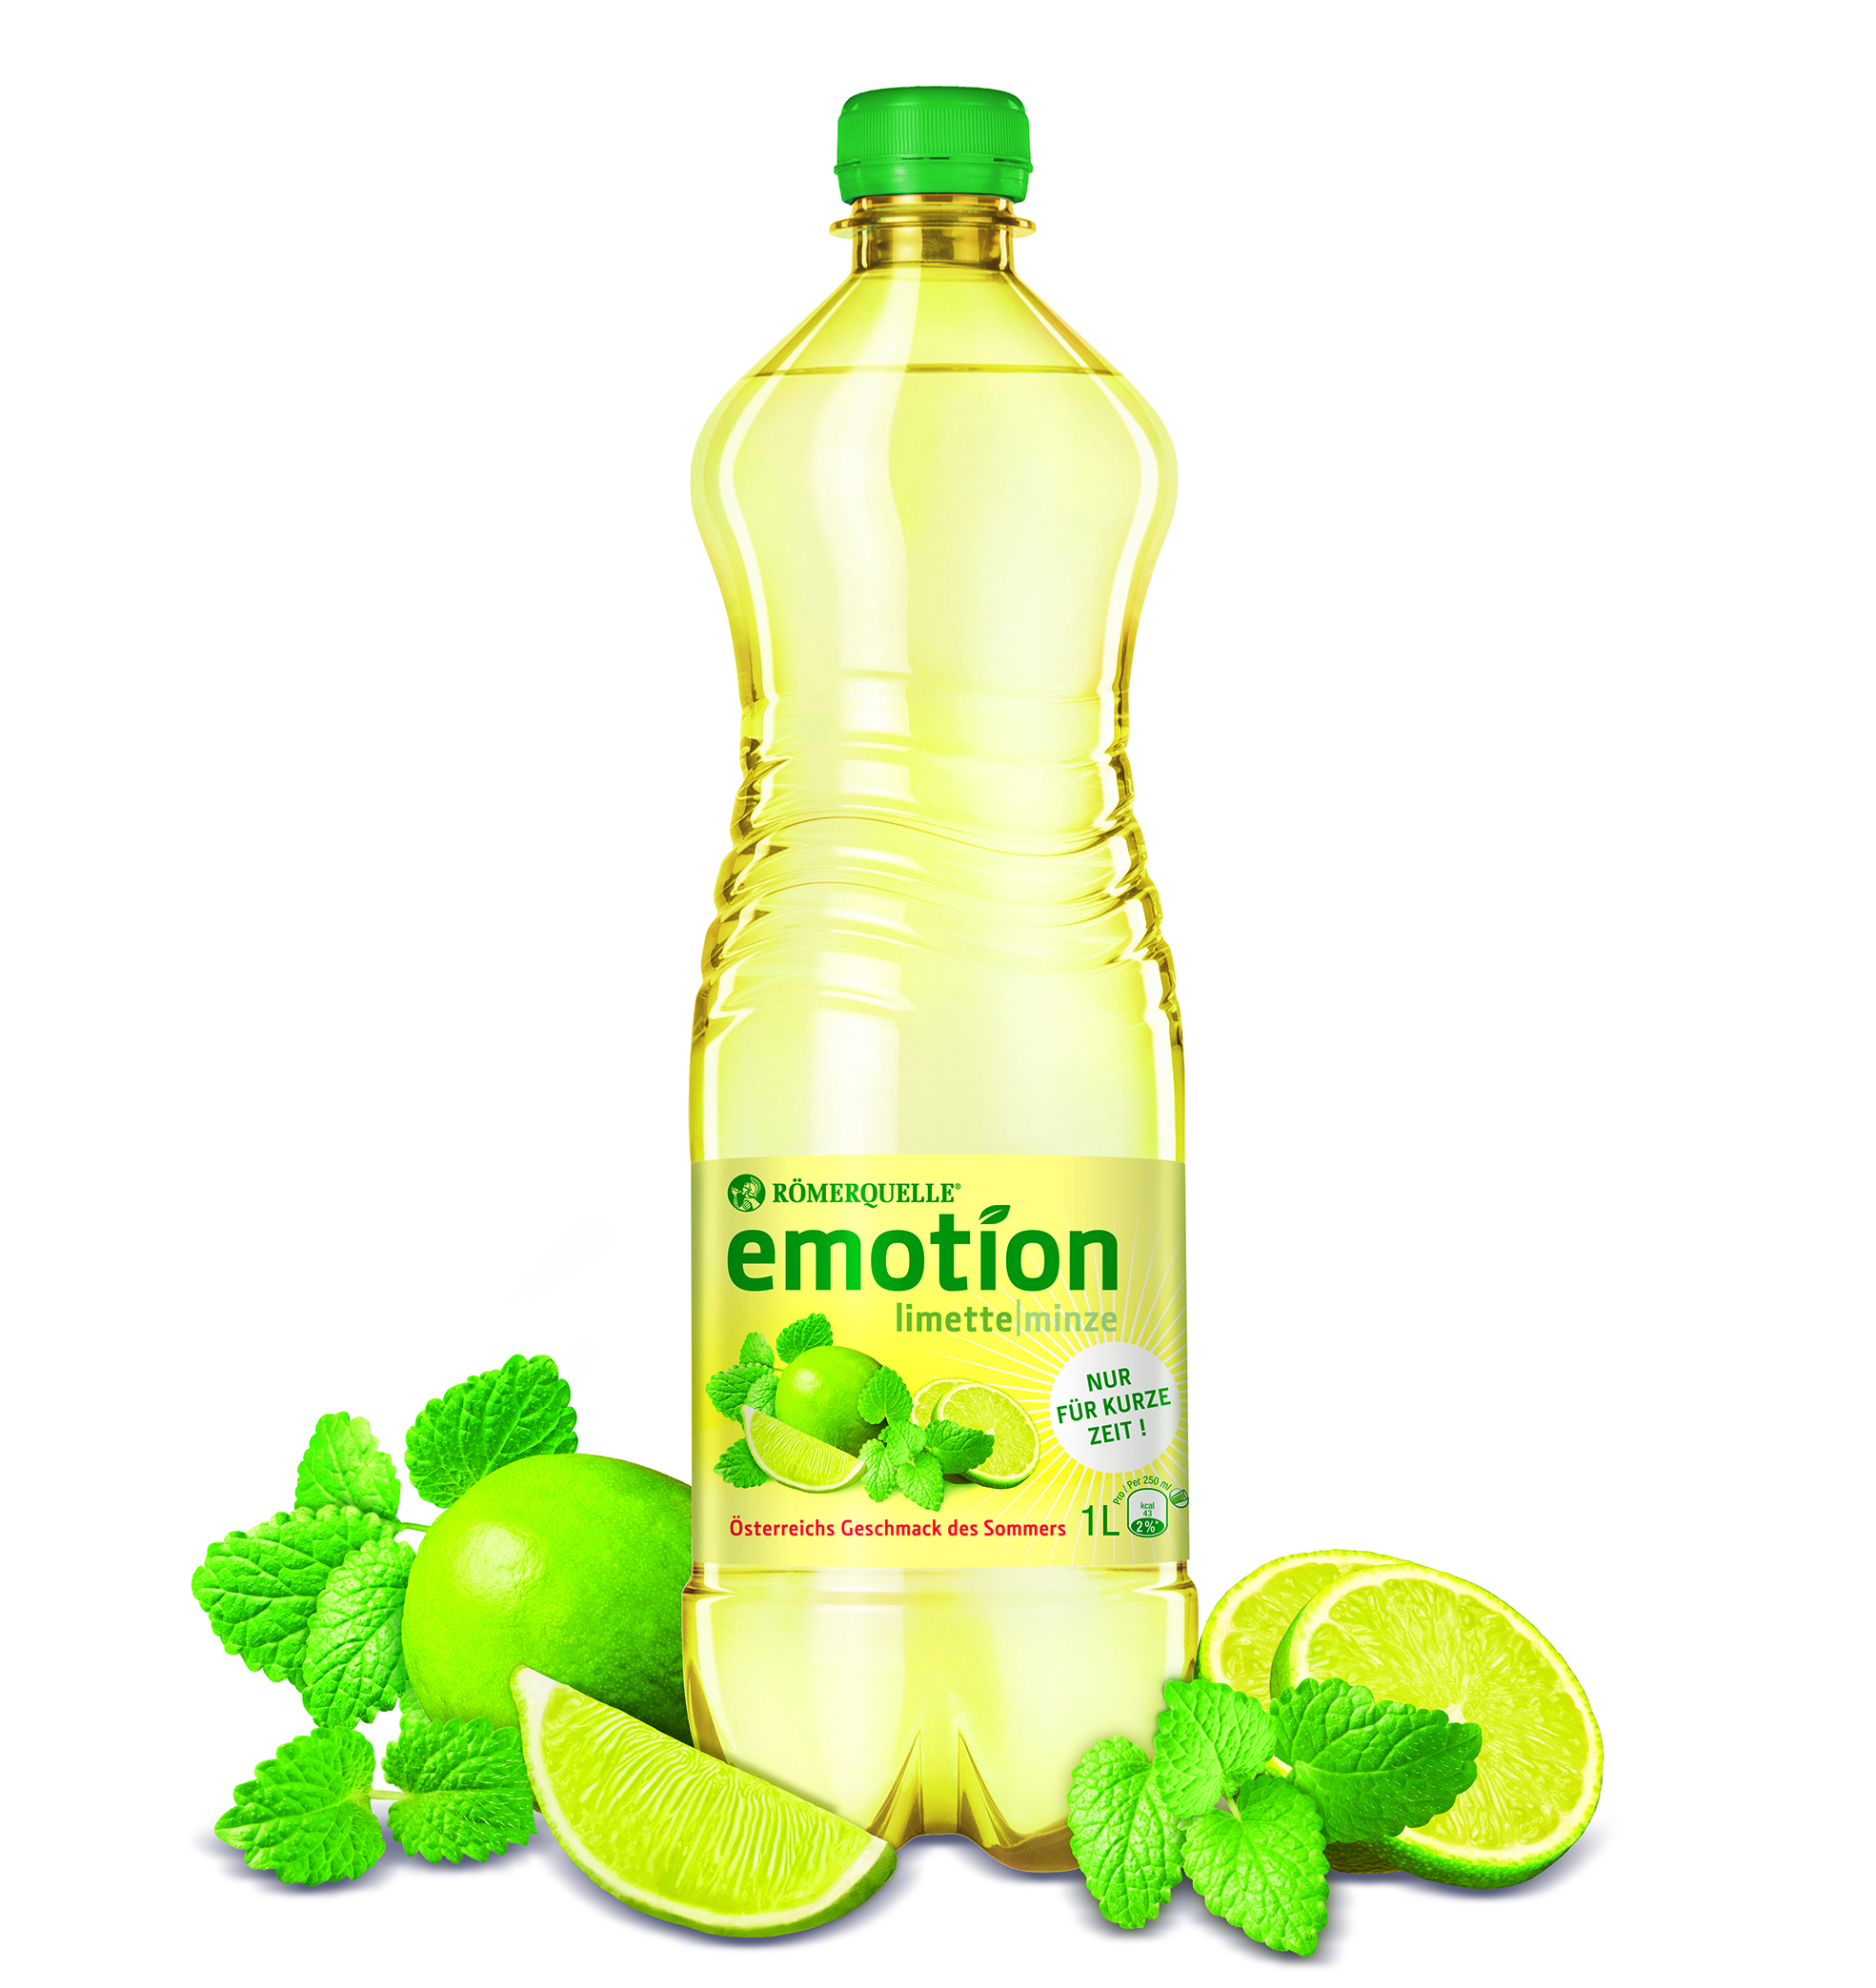 Römerquelle Emotion Limette | Minze